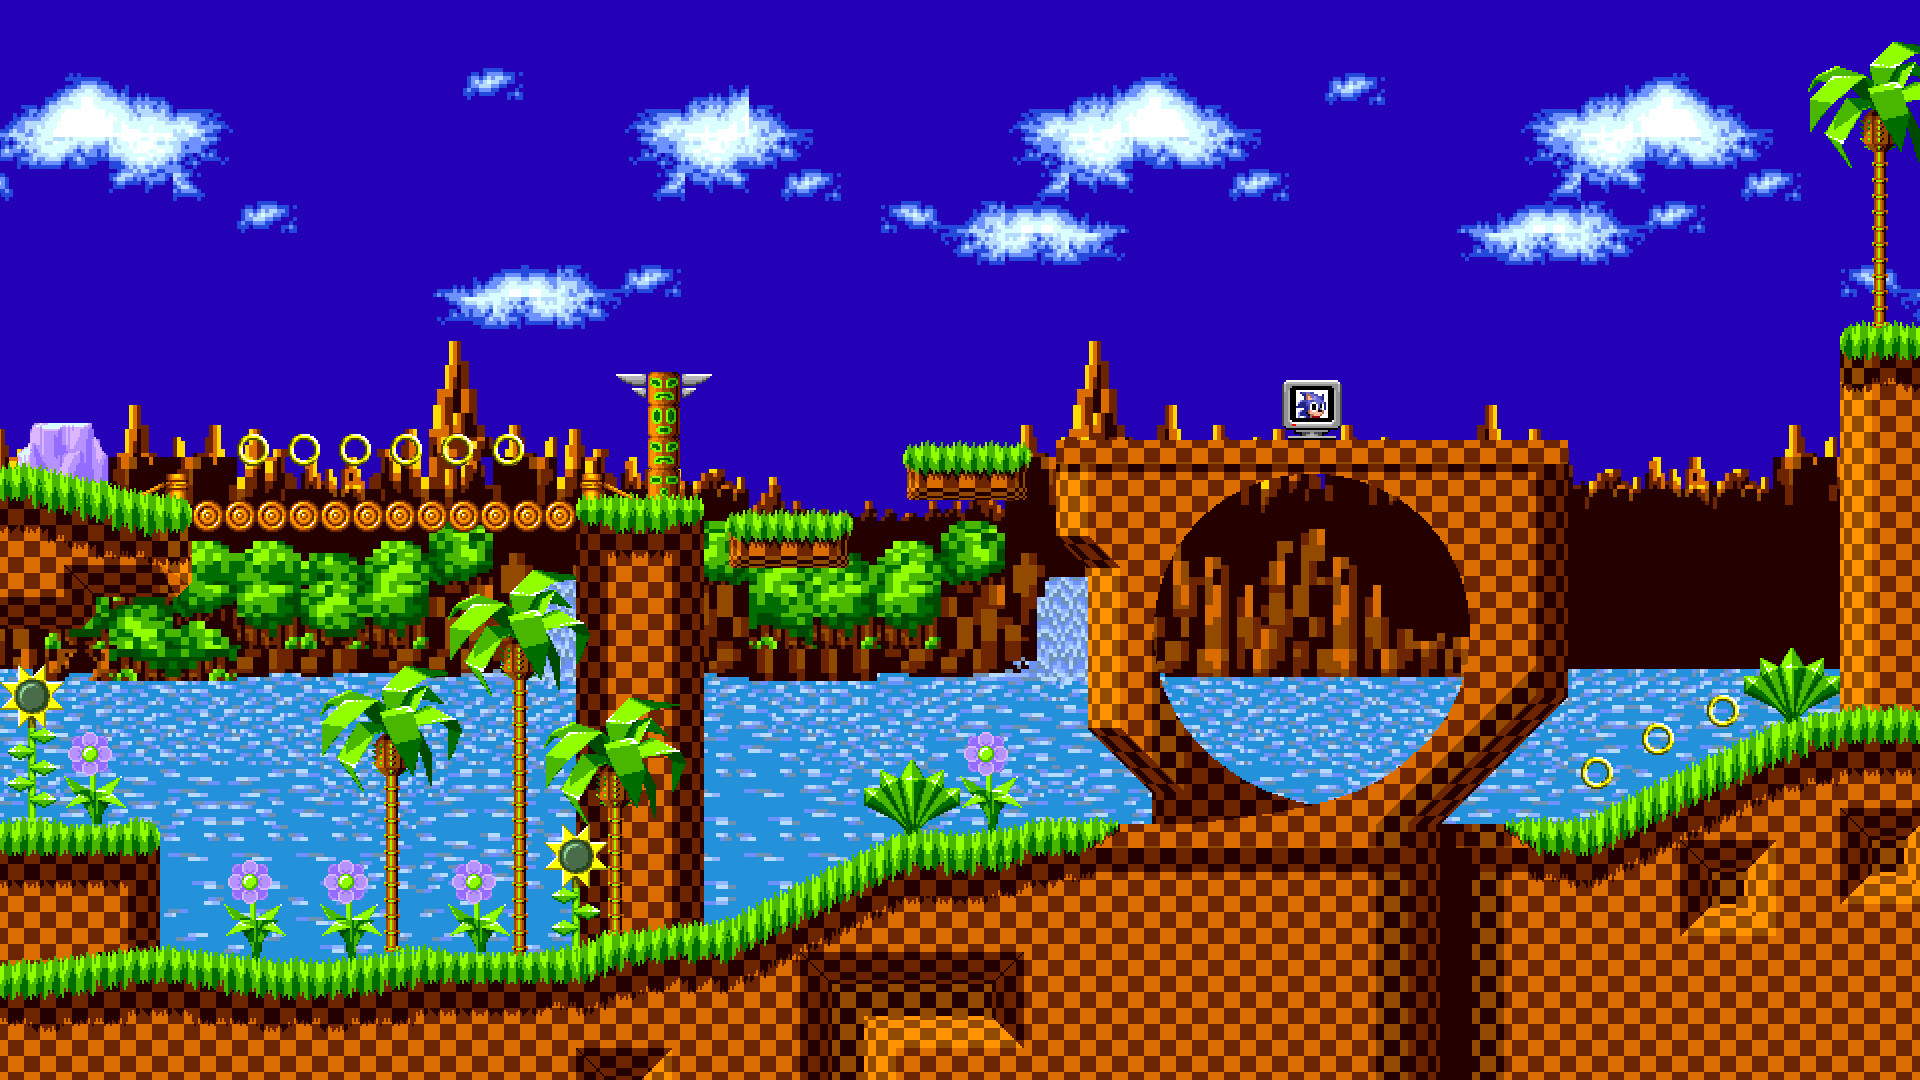 Sonic Level Backgrounds Posted By Sarah Walker